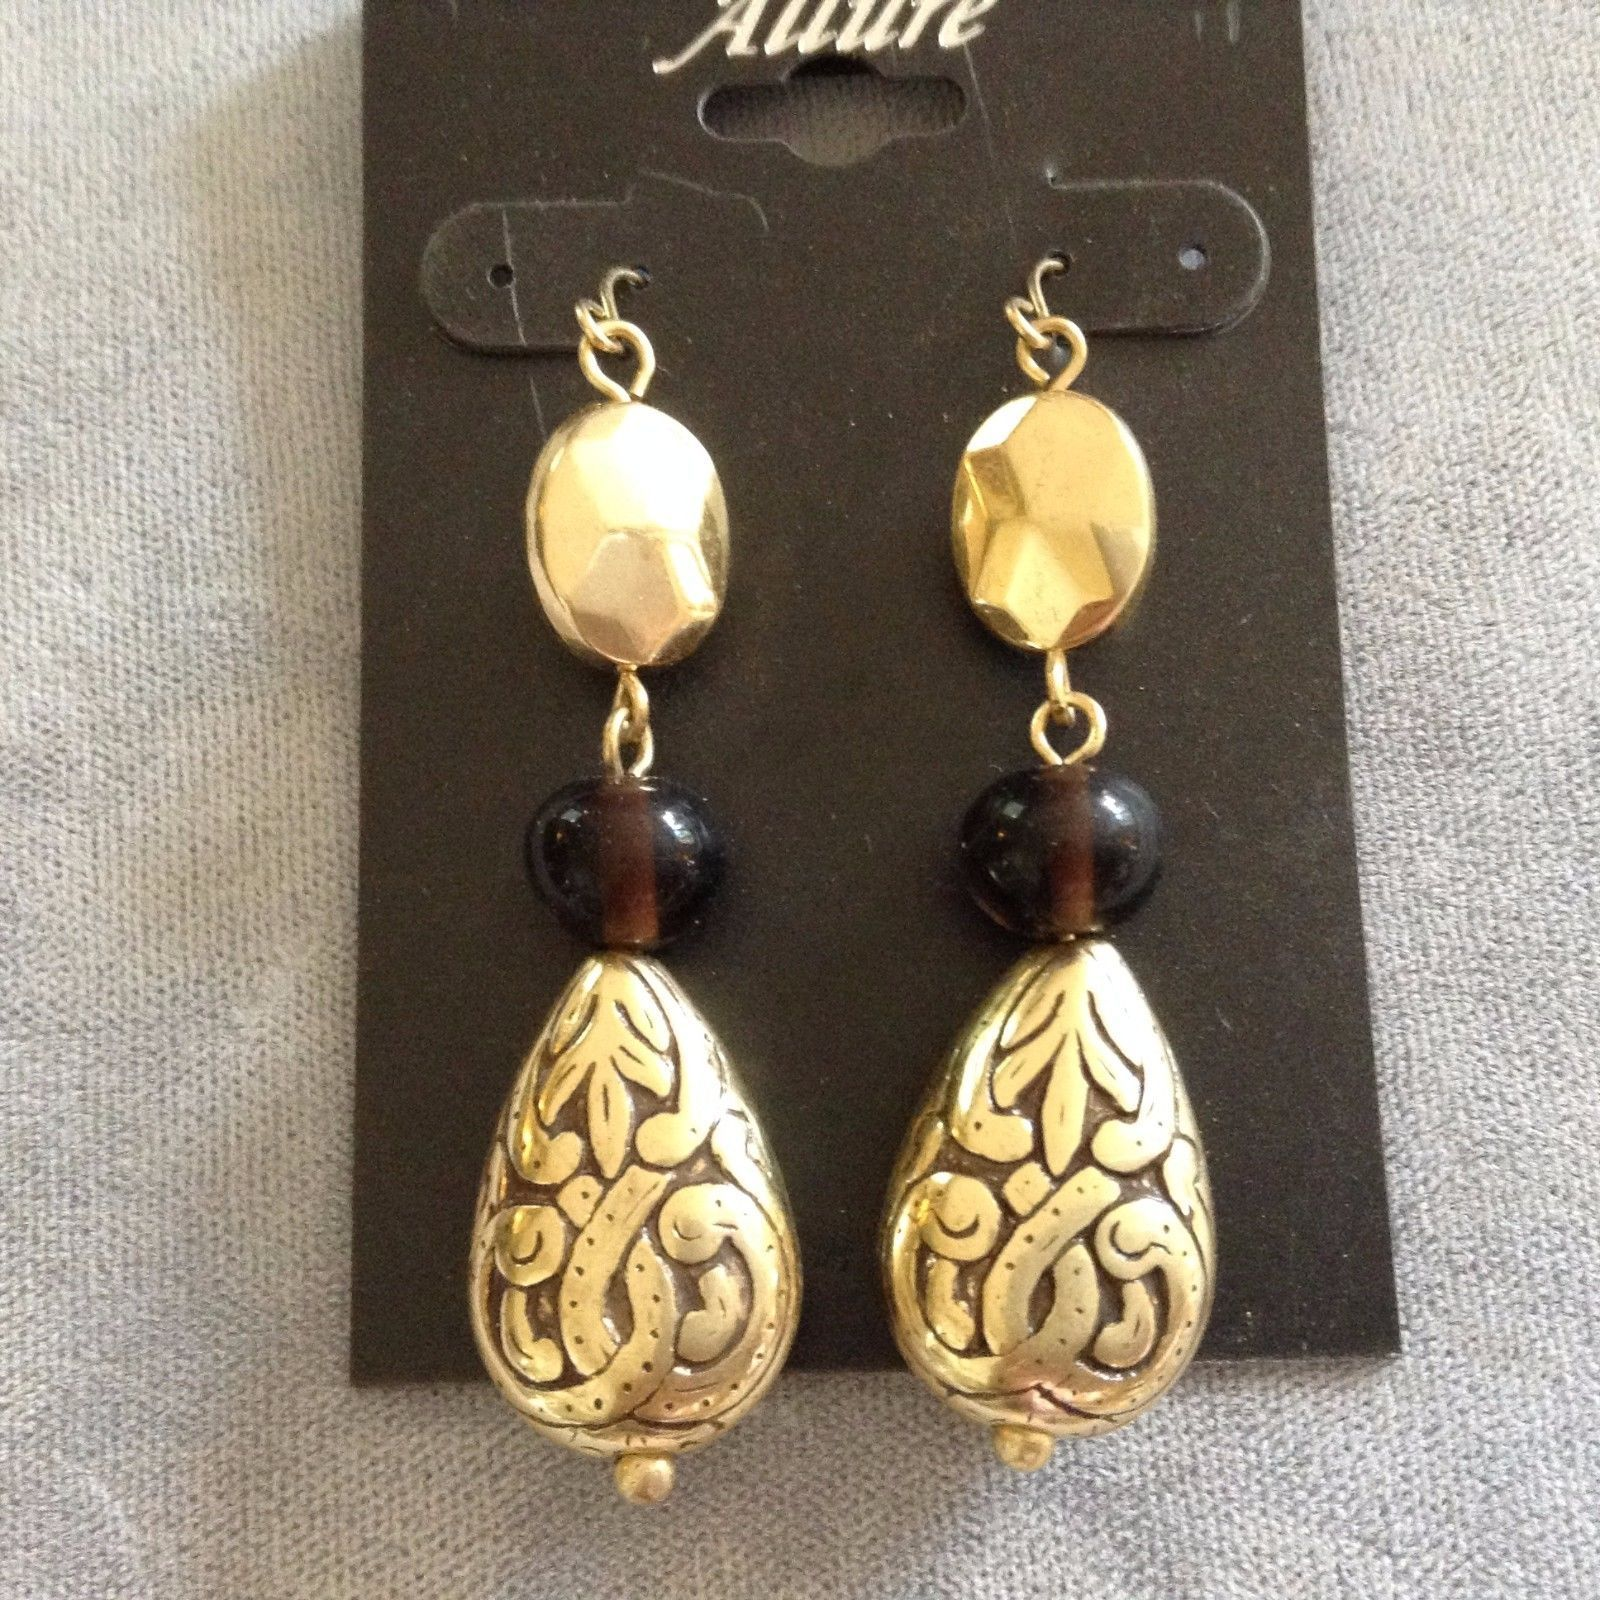 New Allure Earrings Gold Toned Black Drop Hanging Earrings with Celtic Designs